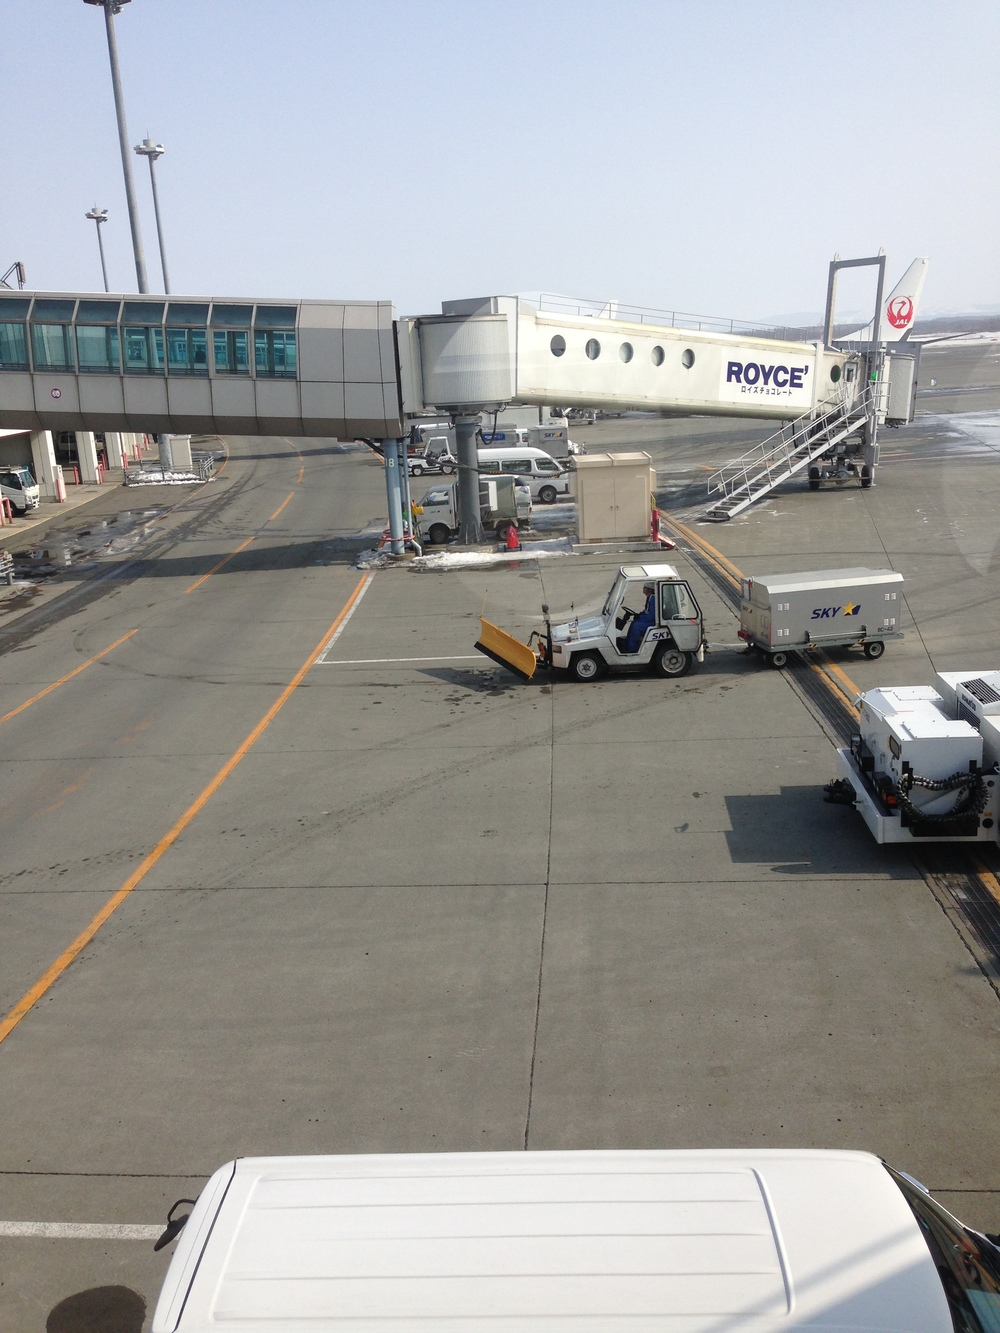 snowplow on airport baggage cart in Japan